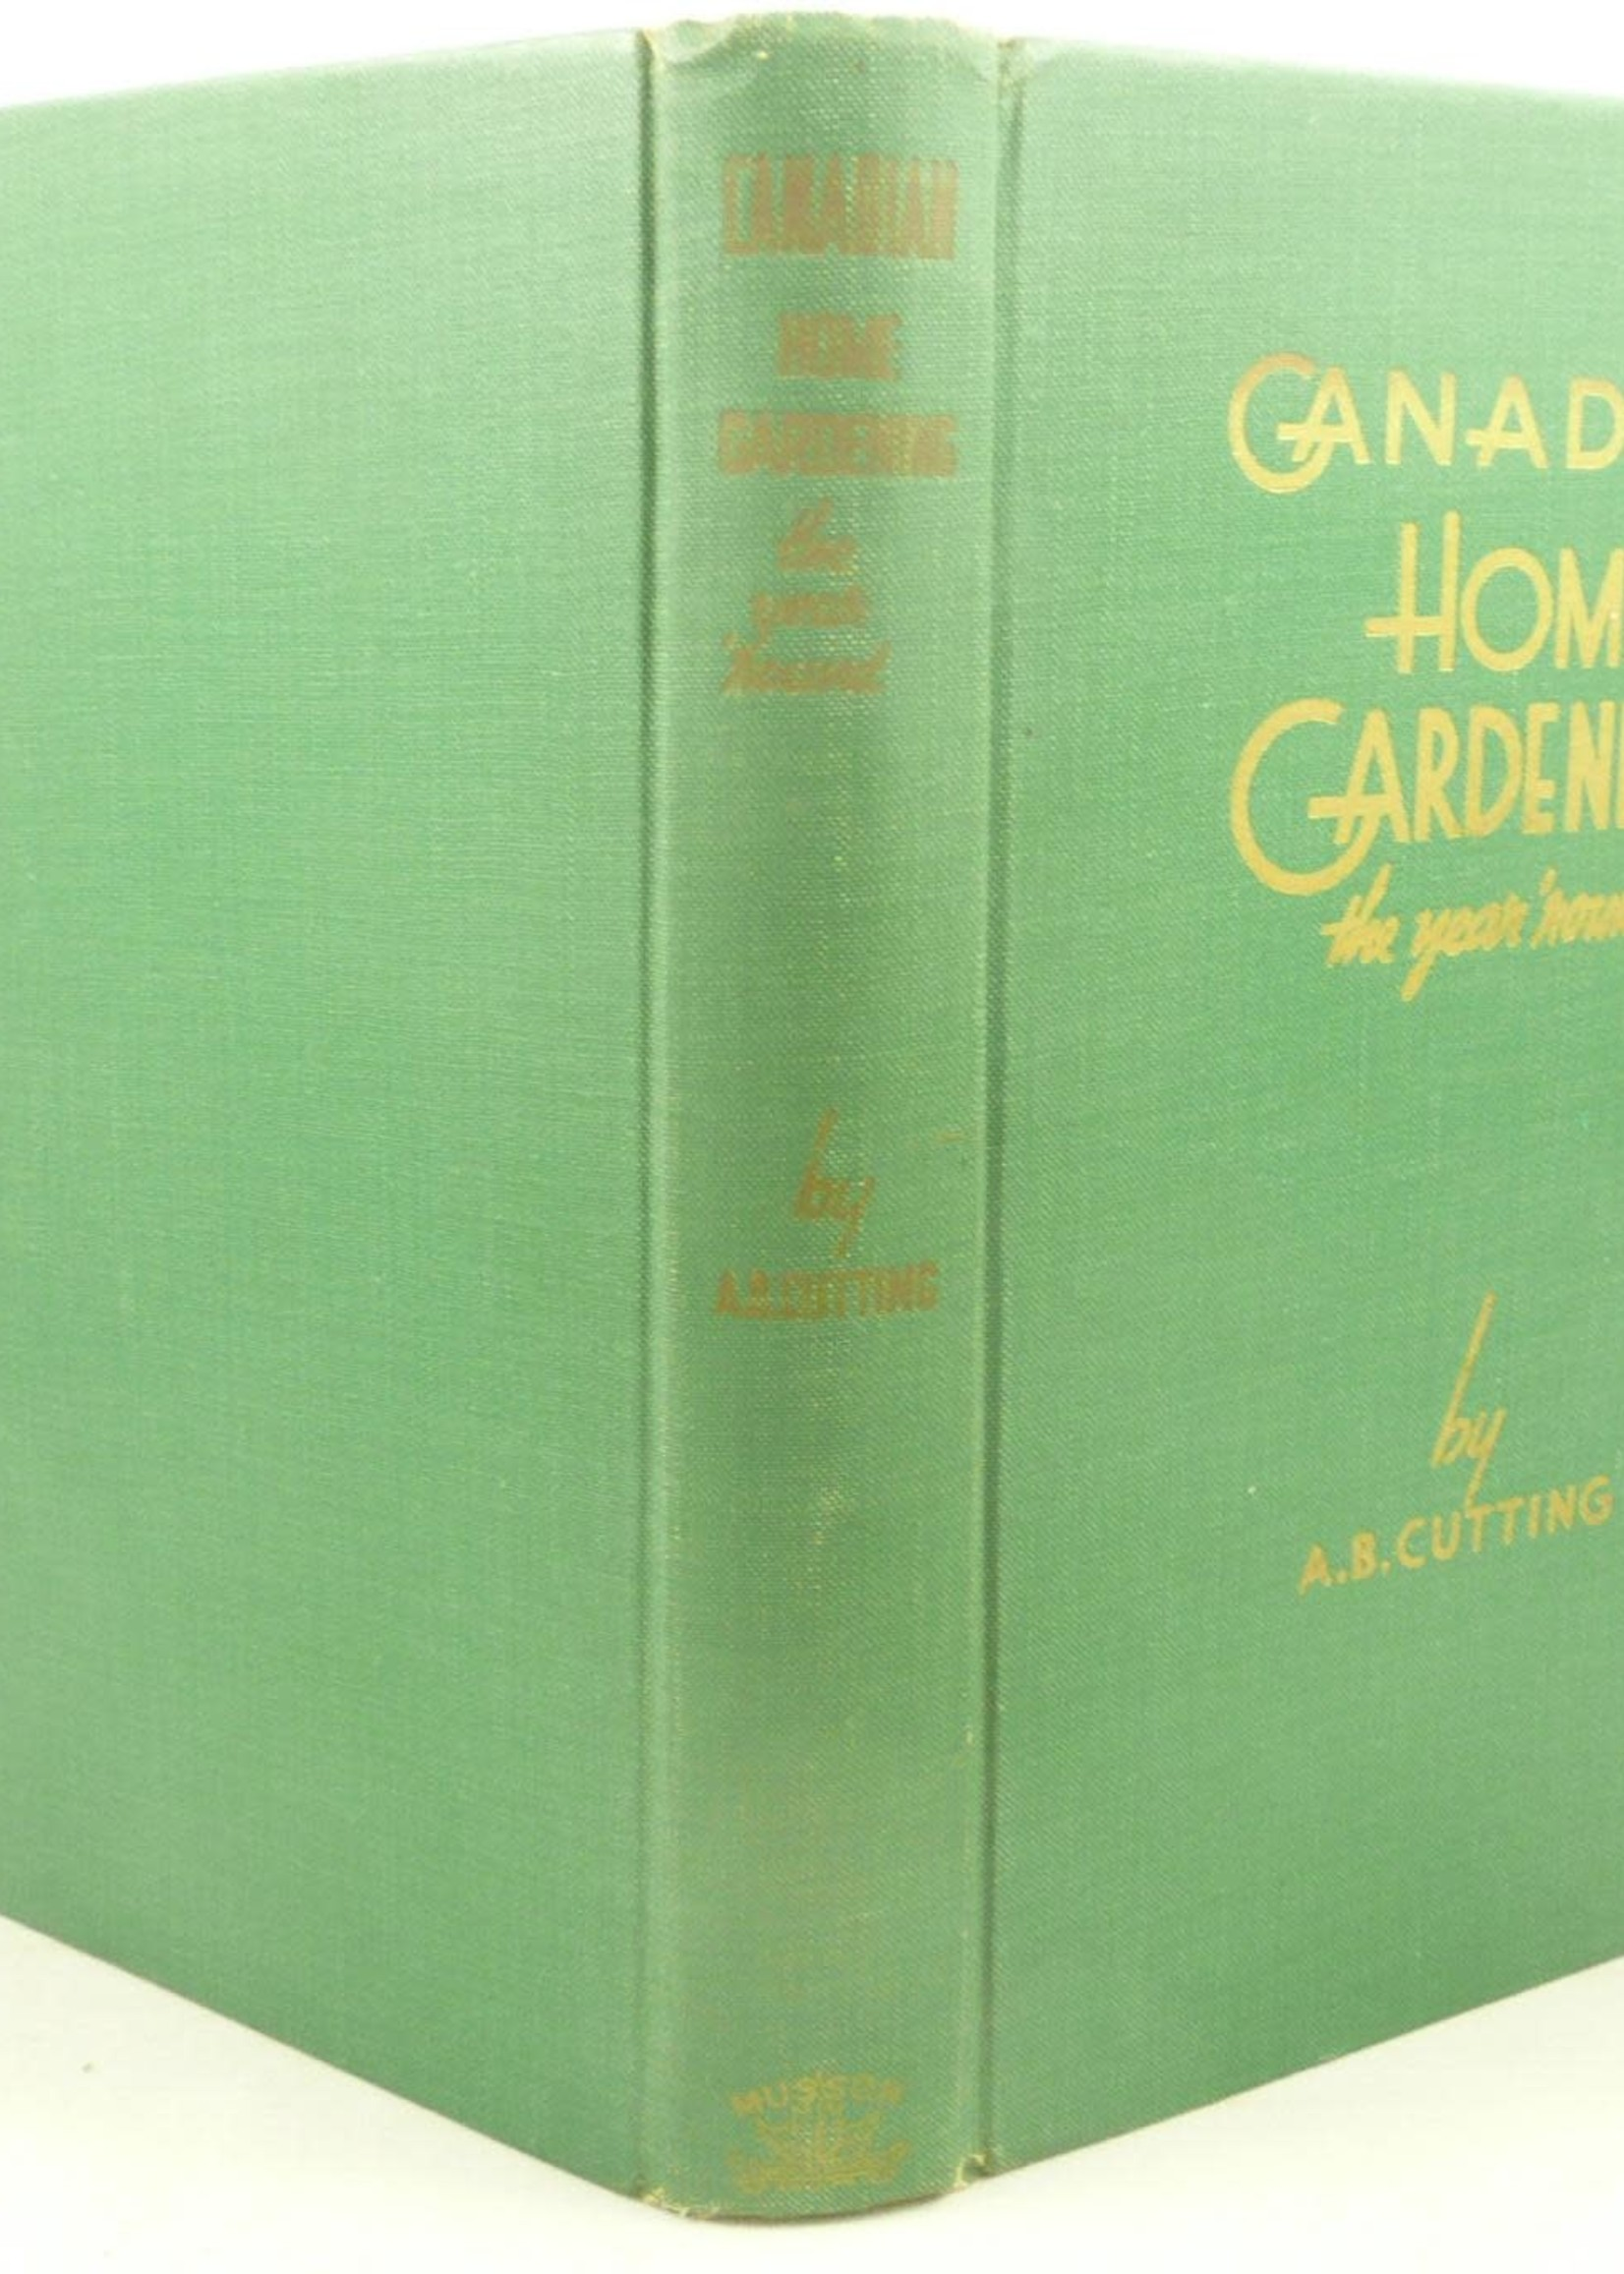 USED - Canadian Home Gardening: The Year 'Round by A. B. Cutting